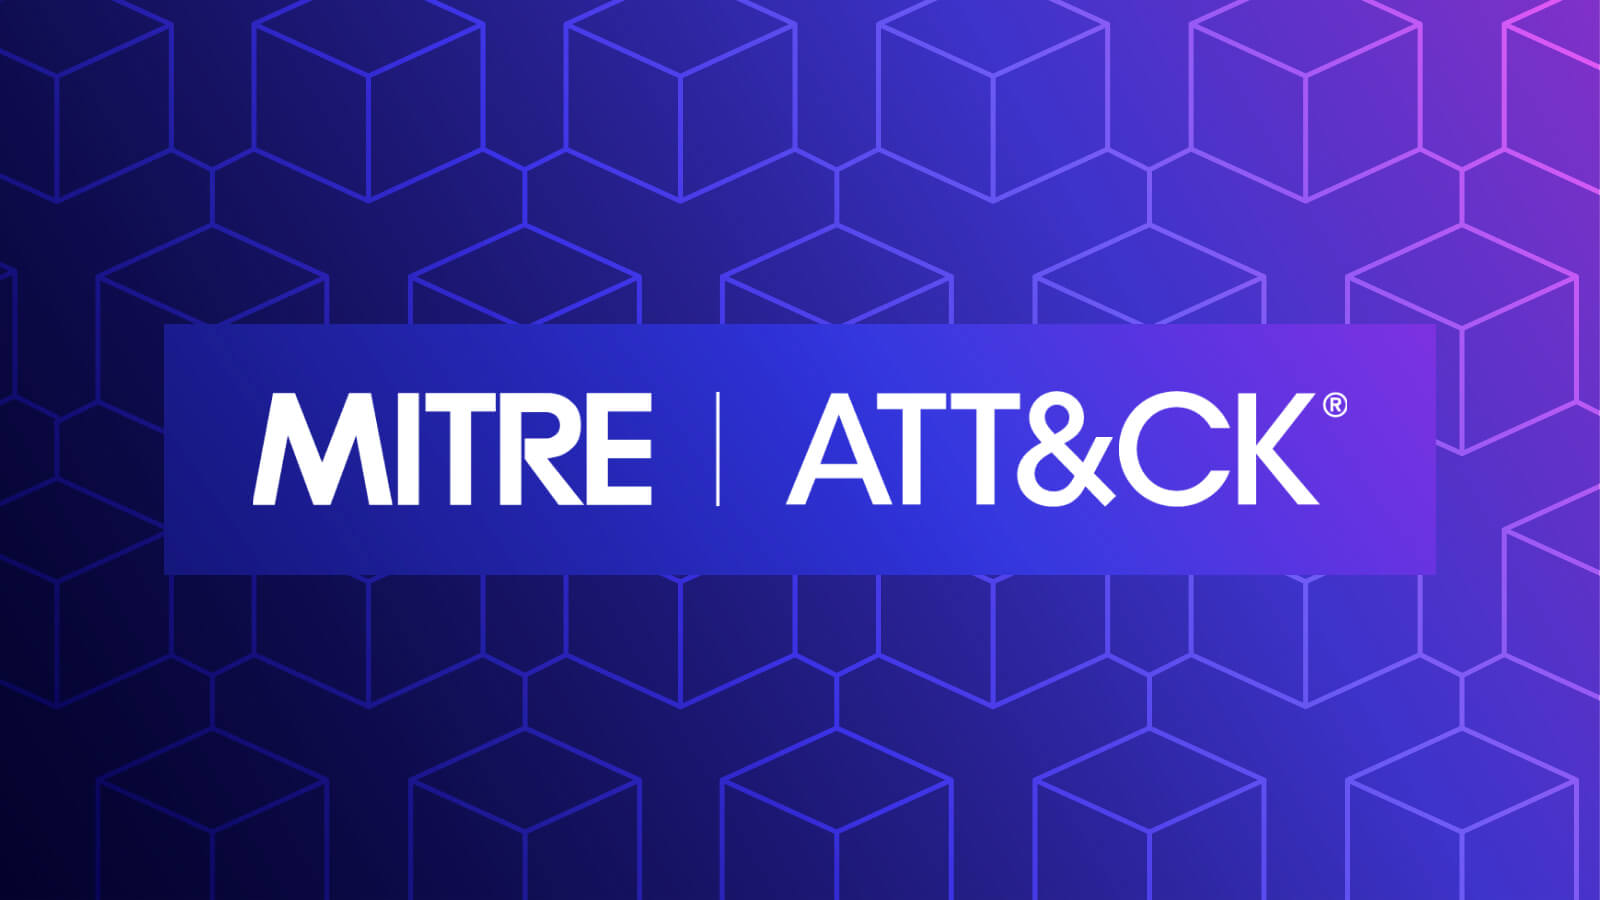 How To Kill The Password: Does The Mitre ATT&CK Framework Help or Hinder?